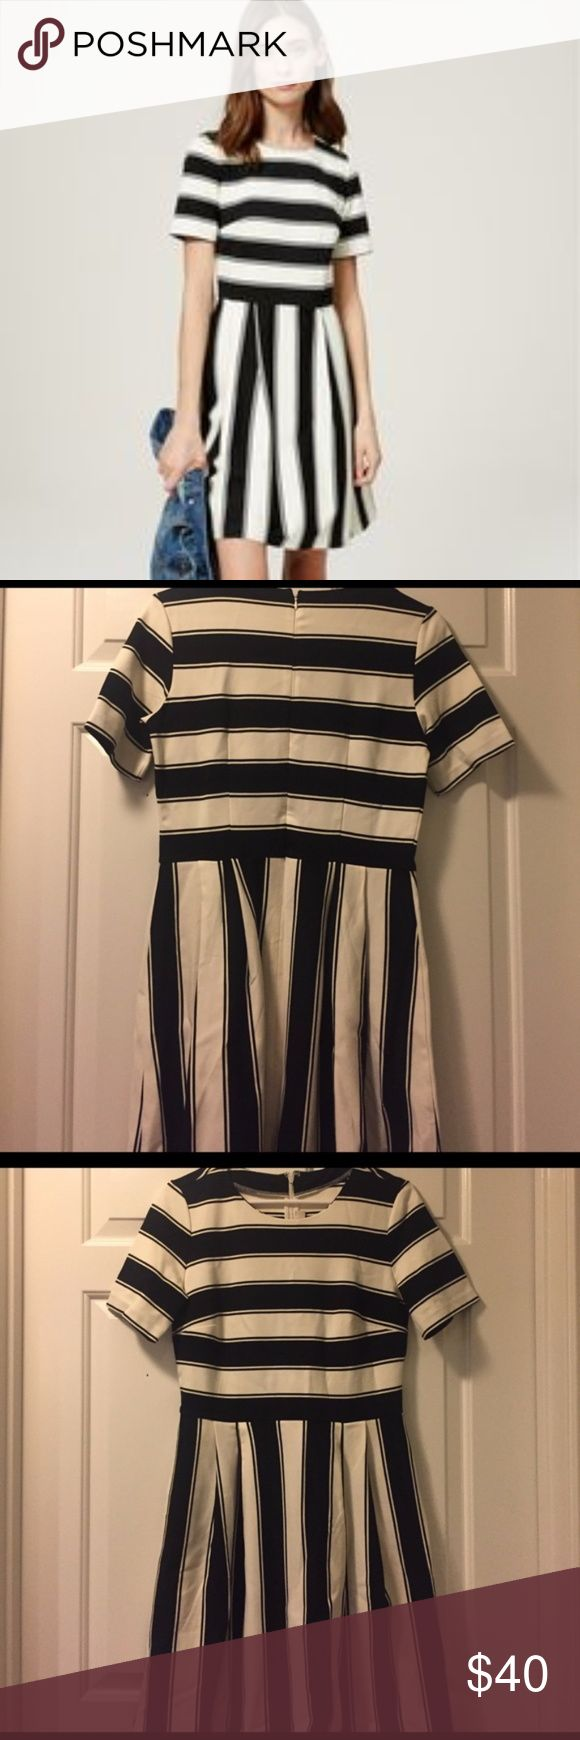 LOFT Fit and Flare Black and White Striped Dress Black and white striped fit and flare dress from LOFT with crew neck, short sleeves, and back zipper. Skirt is pleated. Super comfortable and flattering on all body types with a good amount of stretch.  - 68% rayon, 27% nylon, 5% spandex - Machine washable, dry flat - Size 6  Used but in great condition with no major flaws and no major stains. Only worn a handful of times. Well-taken care of. LOFT Dresses Mini